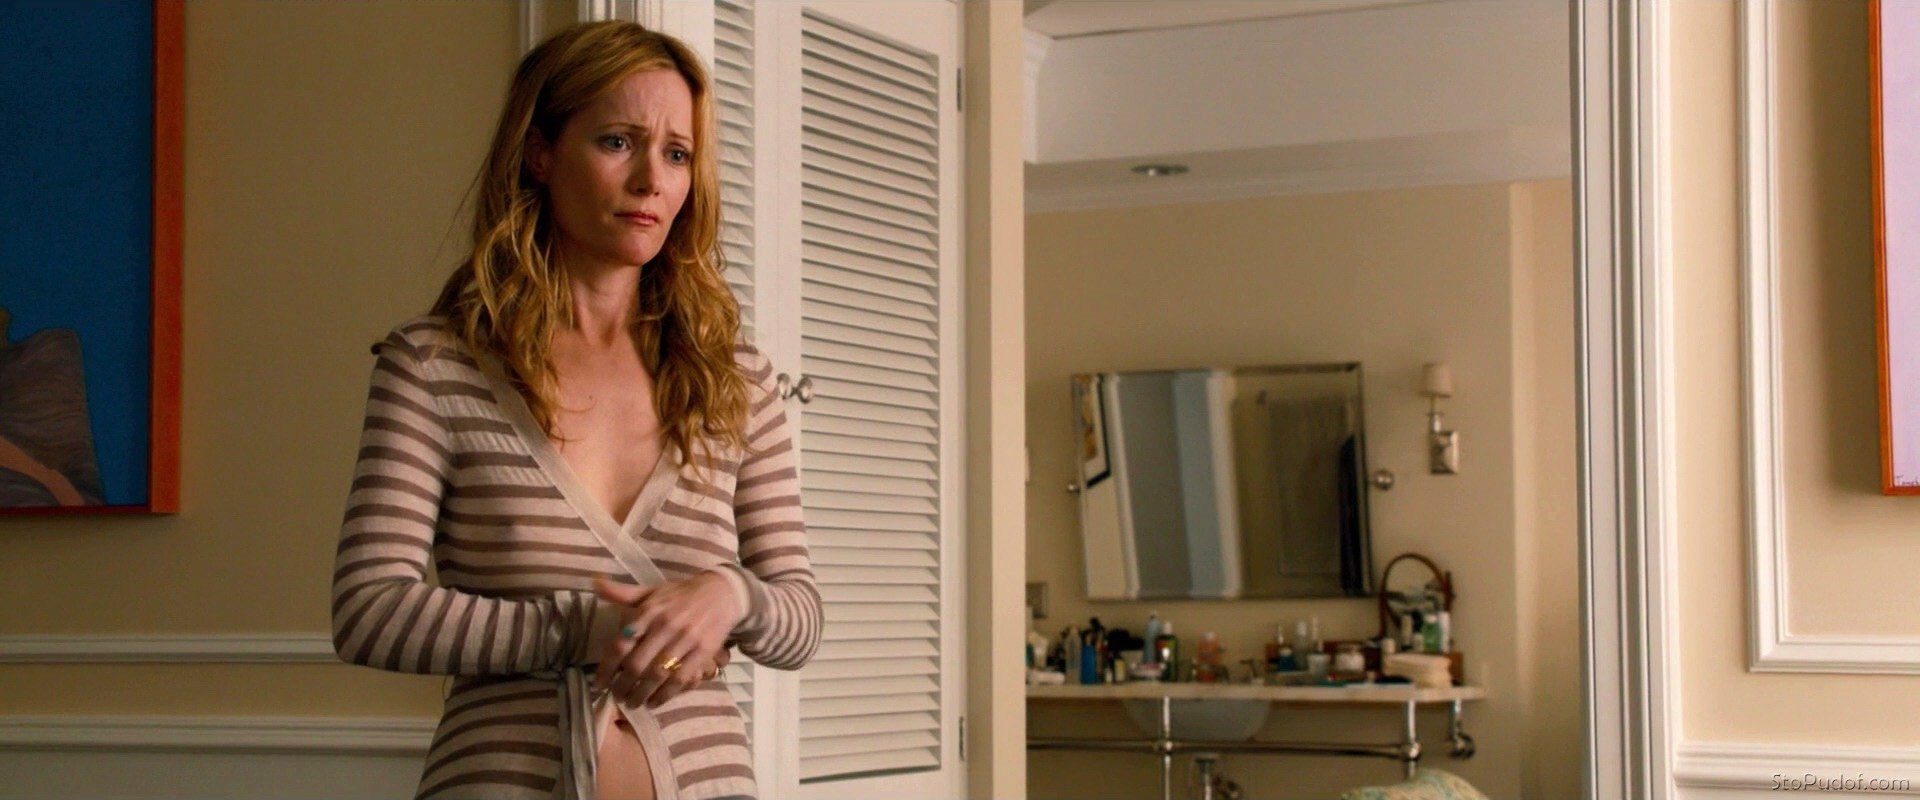 Leslie Mann recent nude photo - UkPhotoSafari